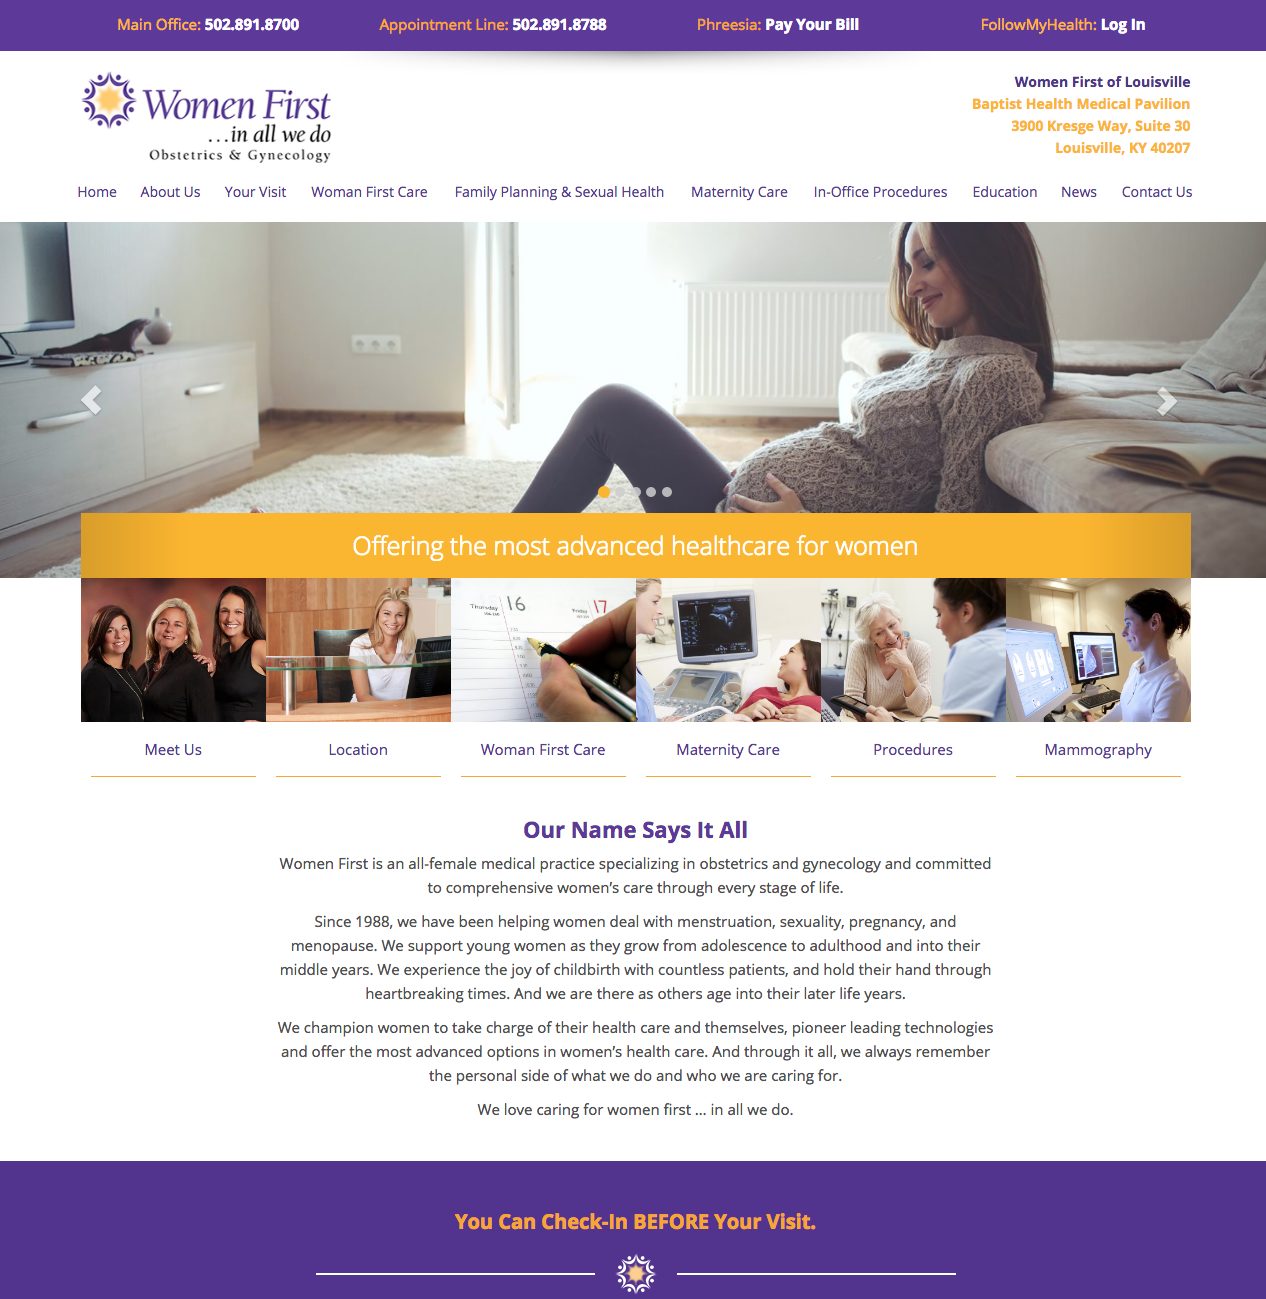 Http Www Wfoflou Com Women S First And Obgyn Obstetrics And Gynecology Practice In Louisville Kentucky Medical Website Design Obstetrics Gynecology